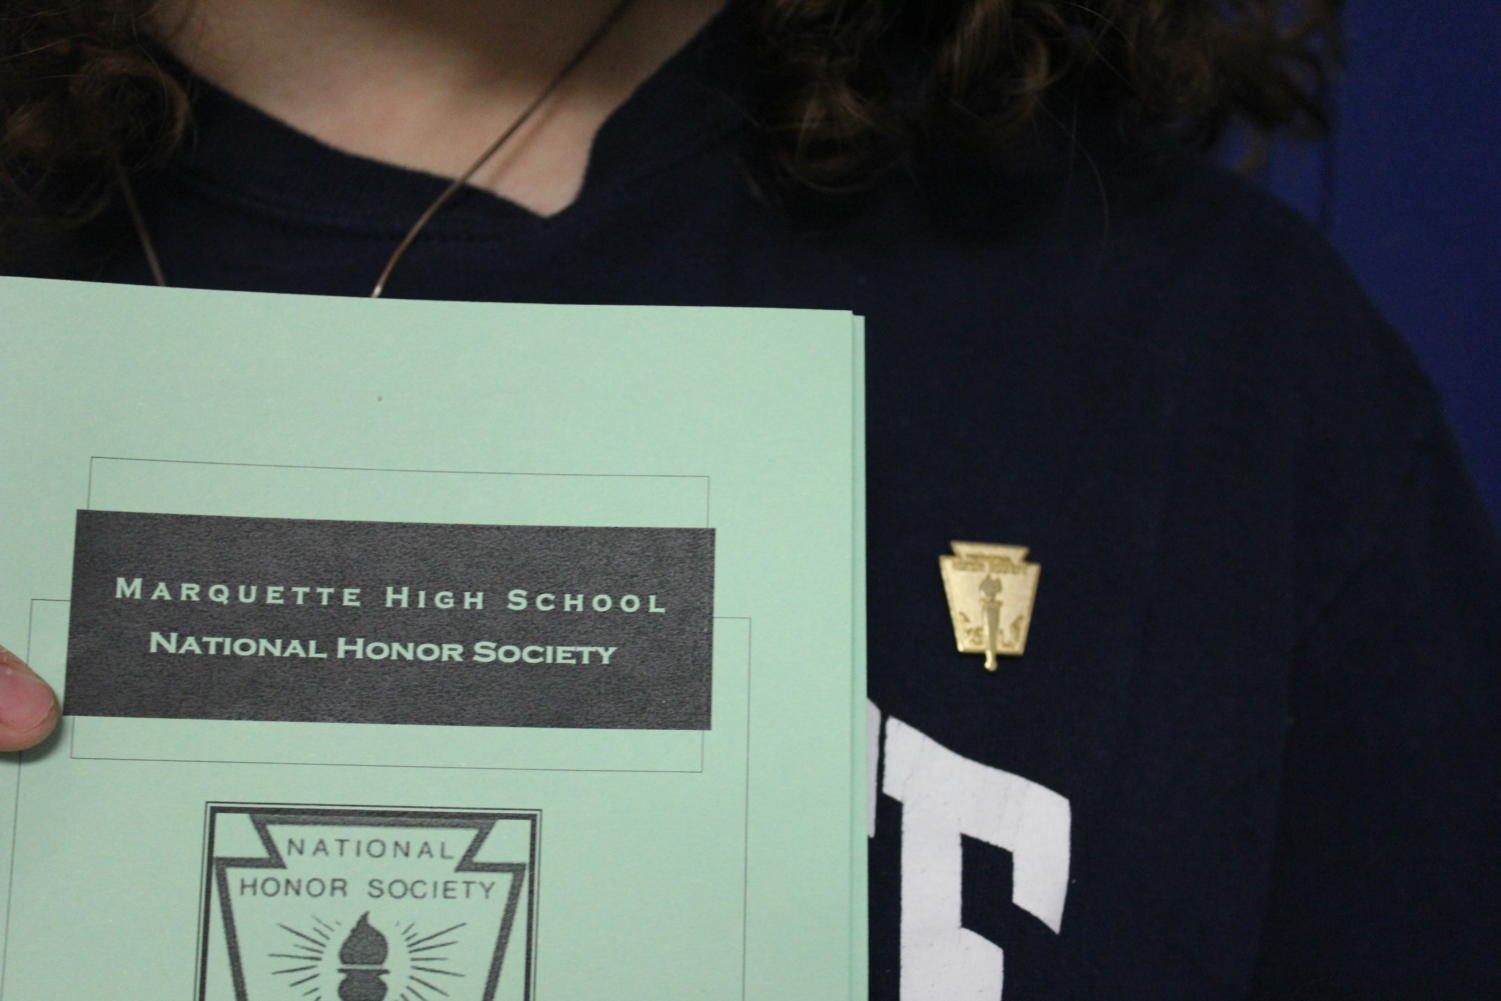 NHS induction ceremony program and pin.